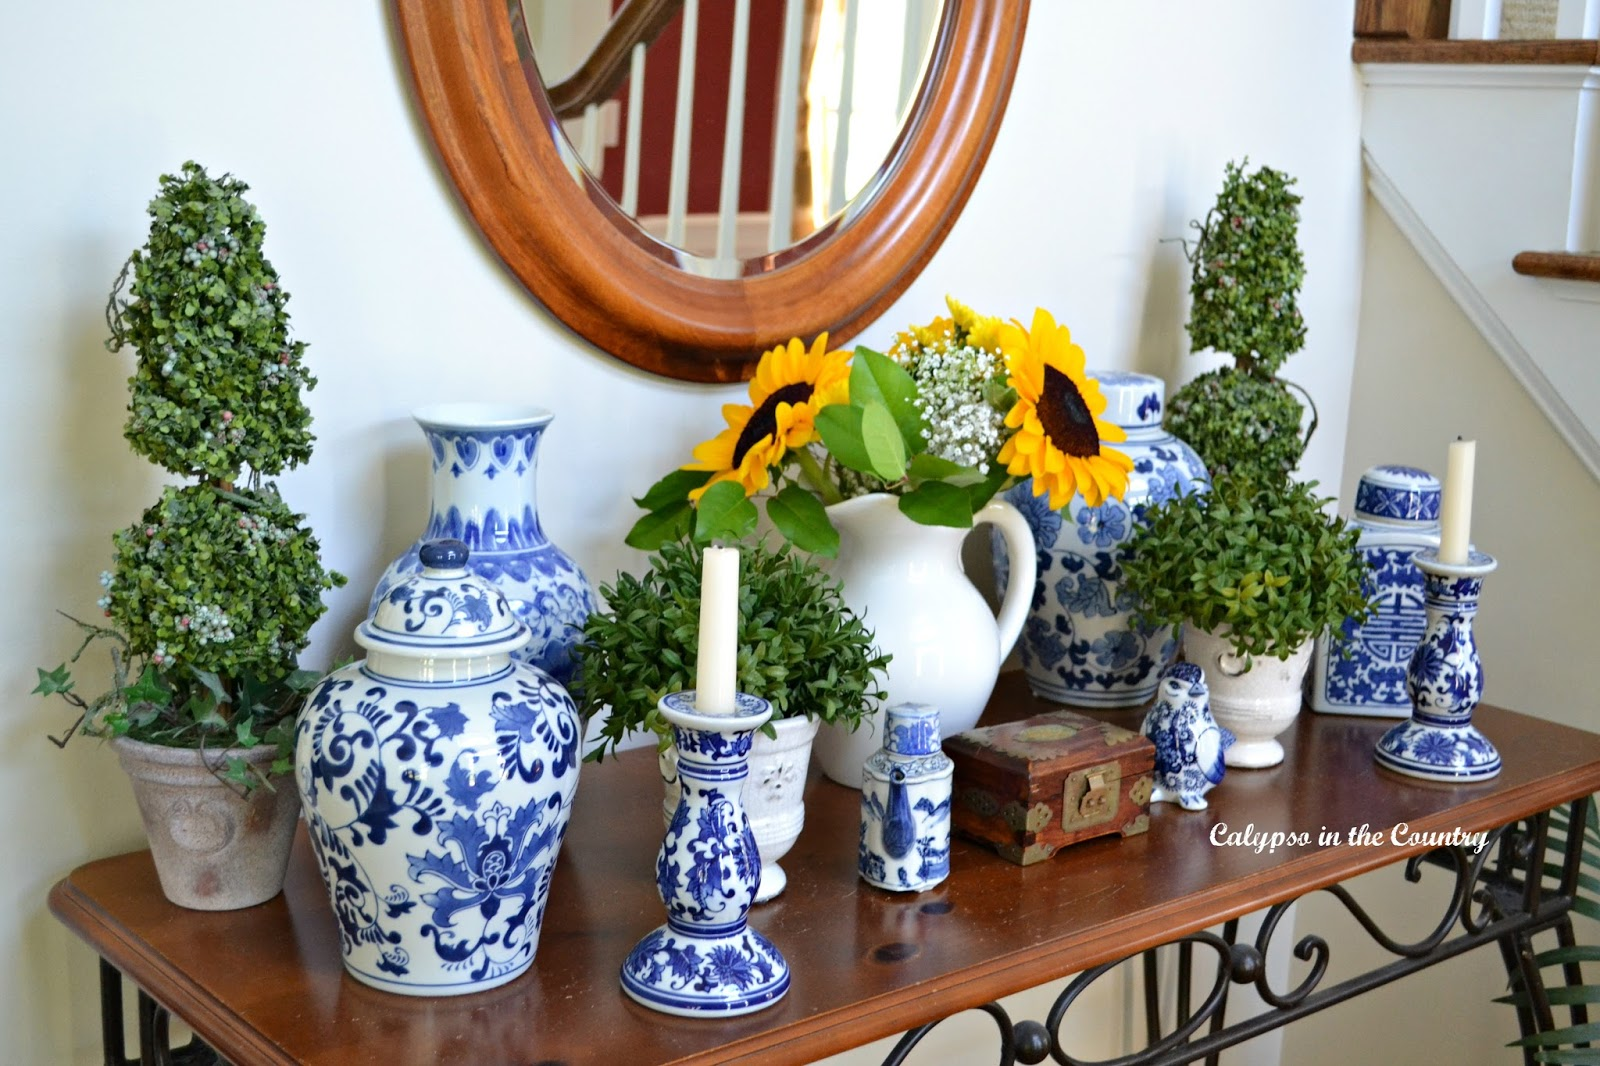 Console table decorated with classic blue and white porcelain